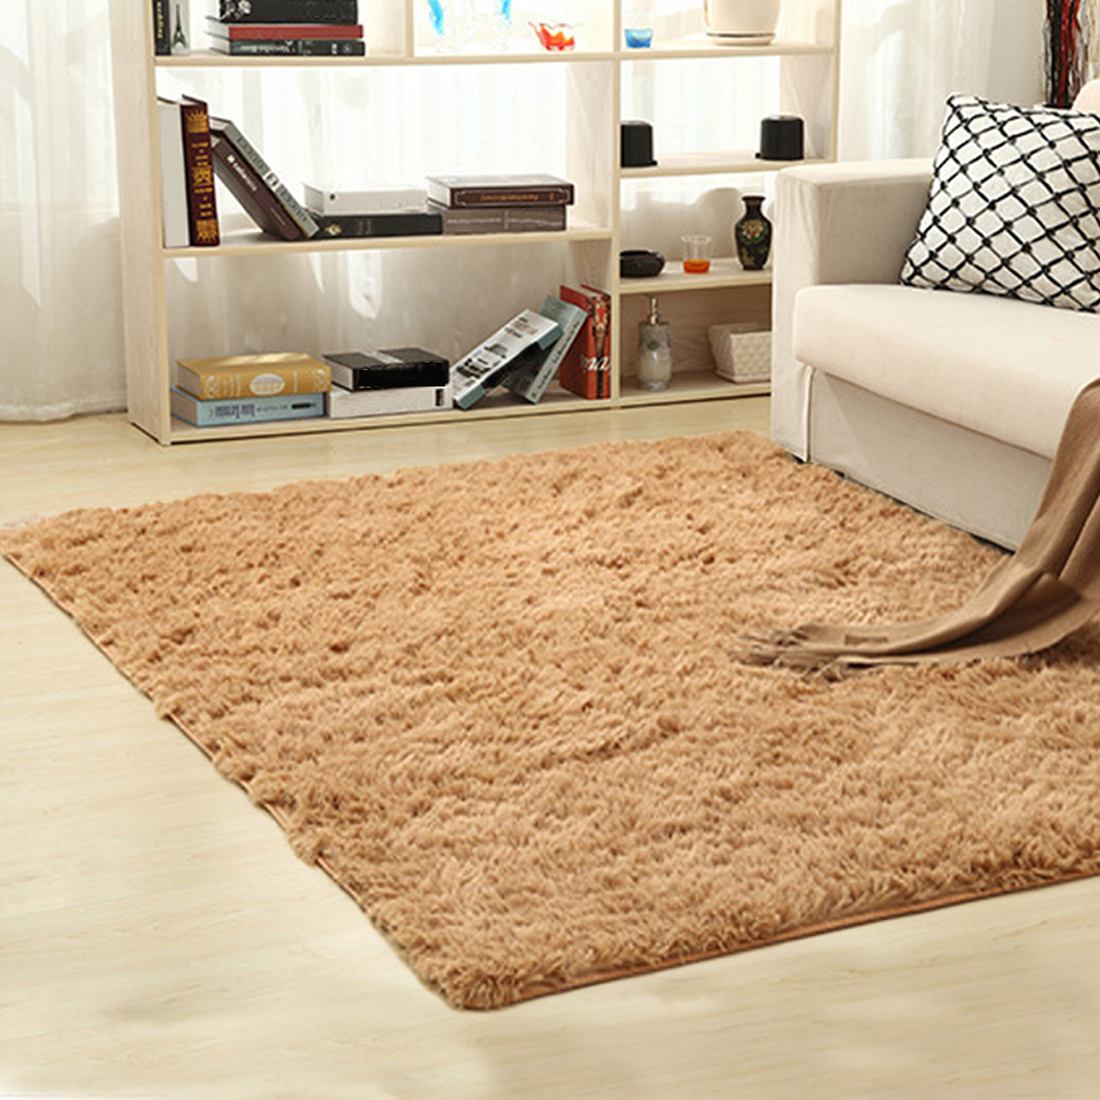 hot sale home textile living room carpet big size mat long hair bedroom carpet tea table carpet. Black Bedroom Furniture Sets. Home Design Ideas